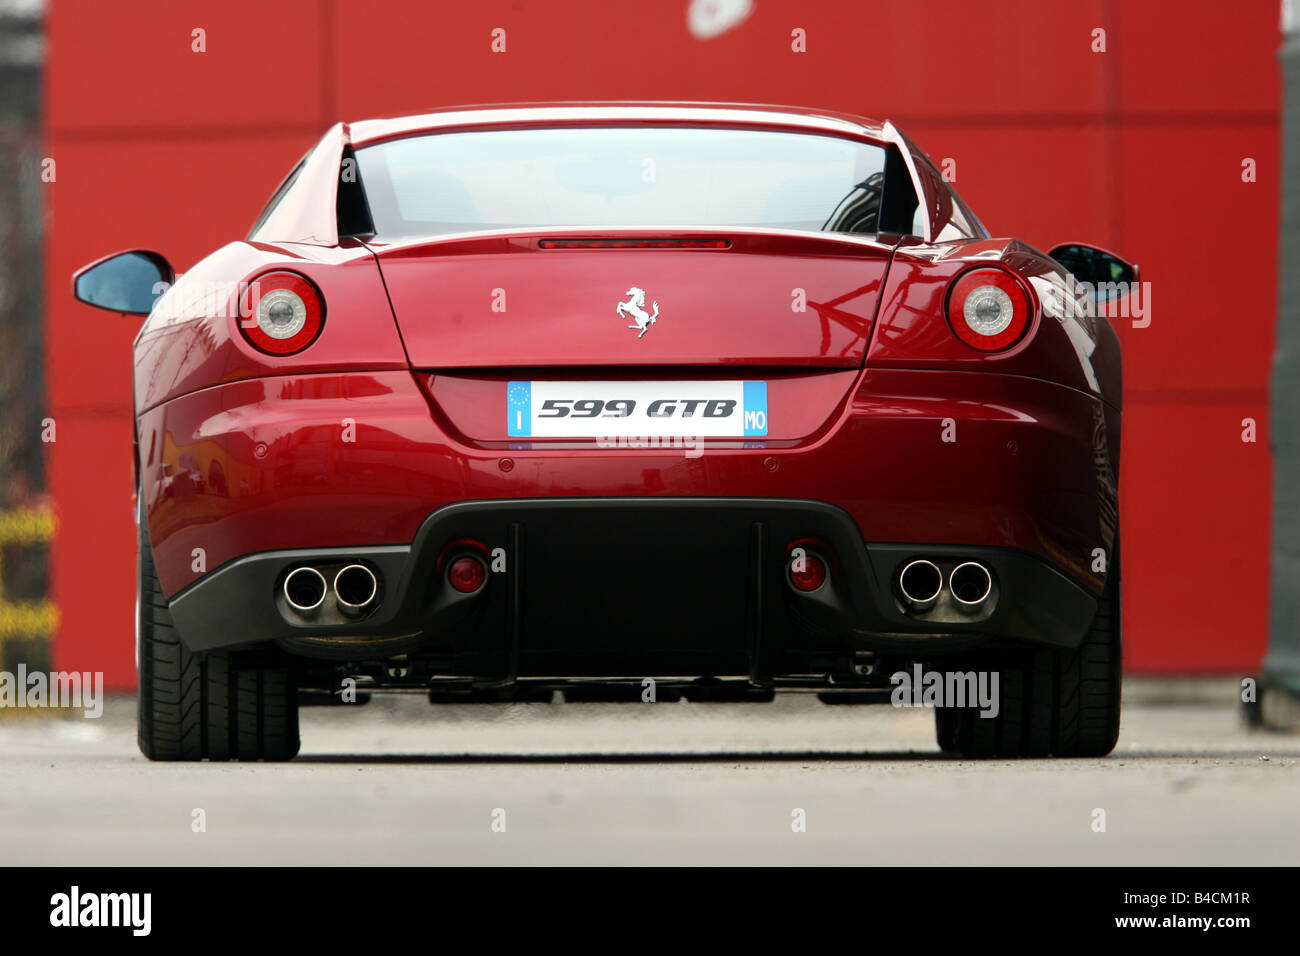 Ferrari 599 Gtb Fiorano Red Model Year 2006 Standing